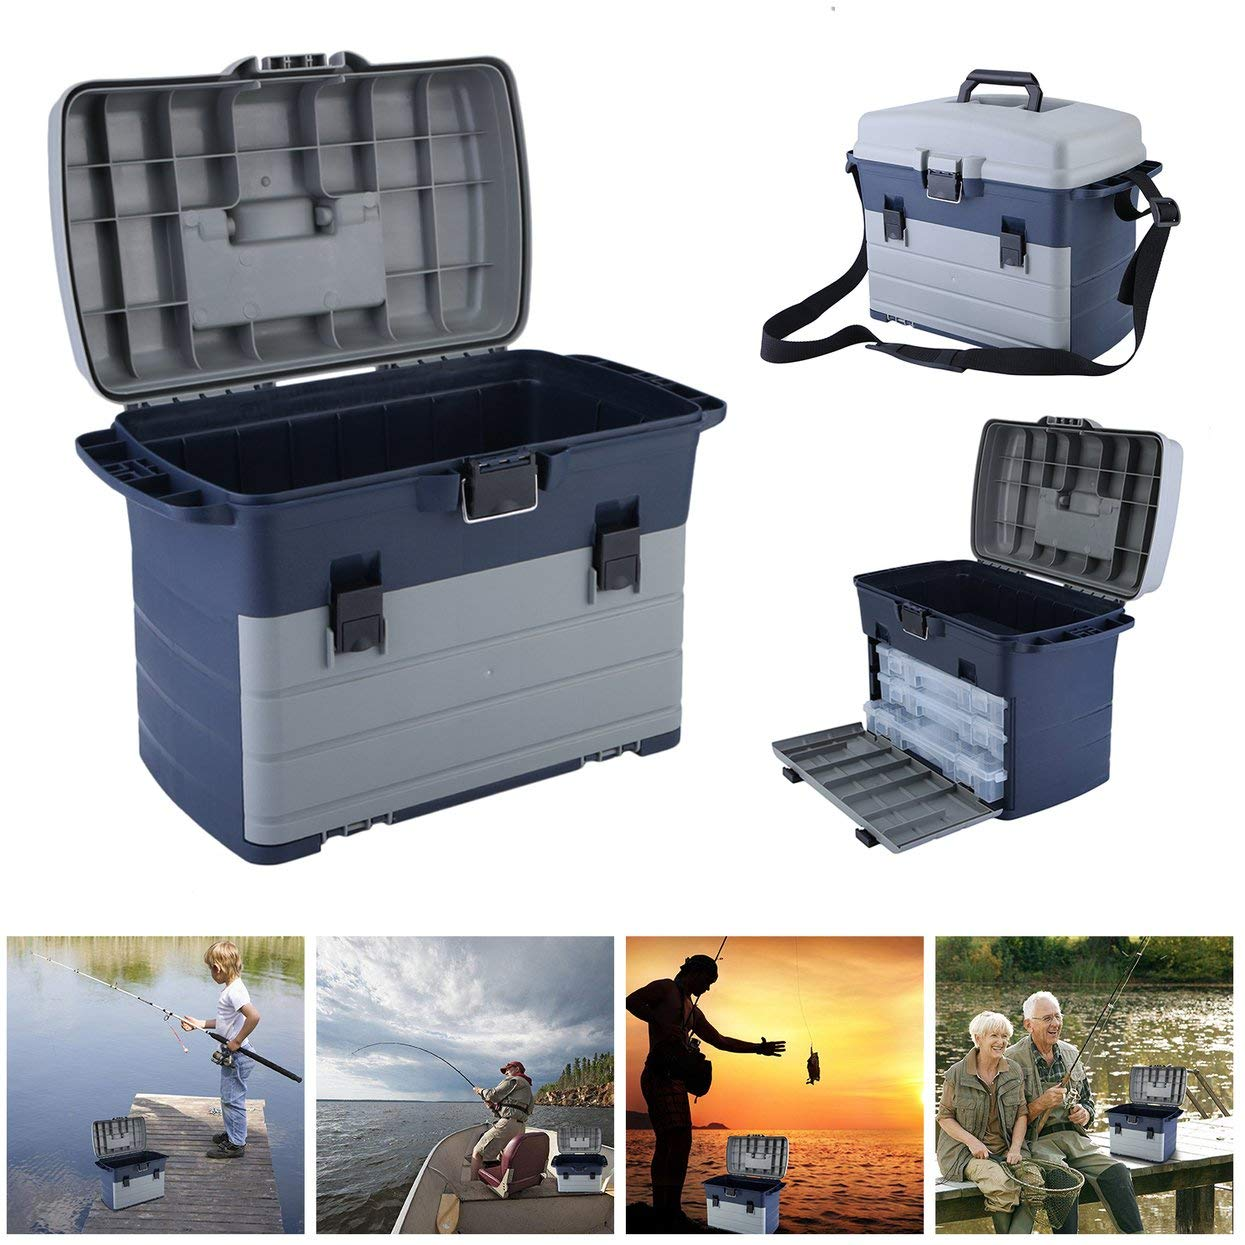 Heavy Duty Fishing Tackle Box 3 Layers Removable Trays Storage Organizer Case Tool Fishing Accessories Lures Bait Storage Box by ToGames (Image #2)